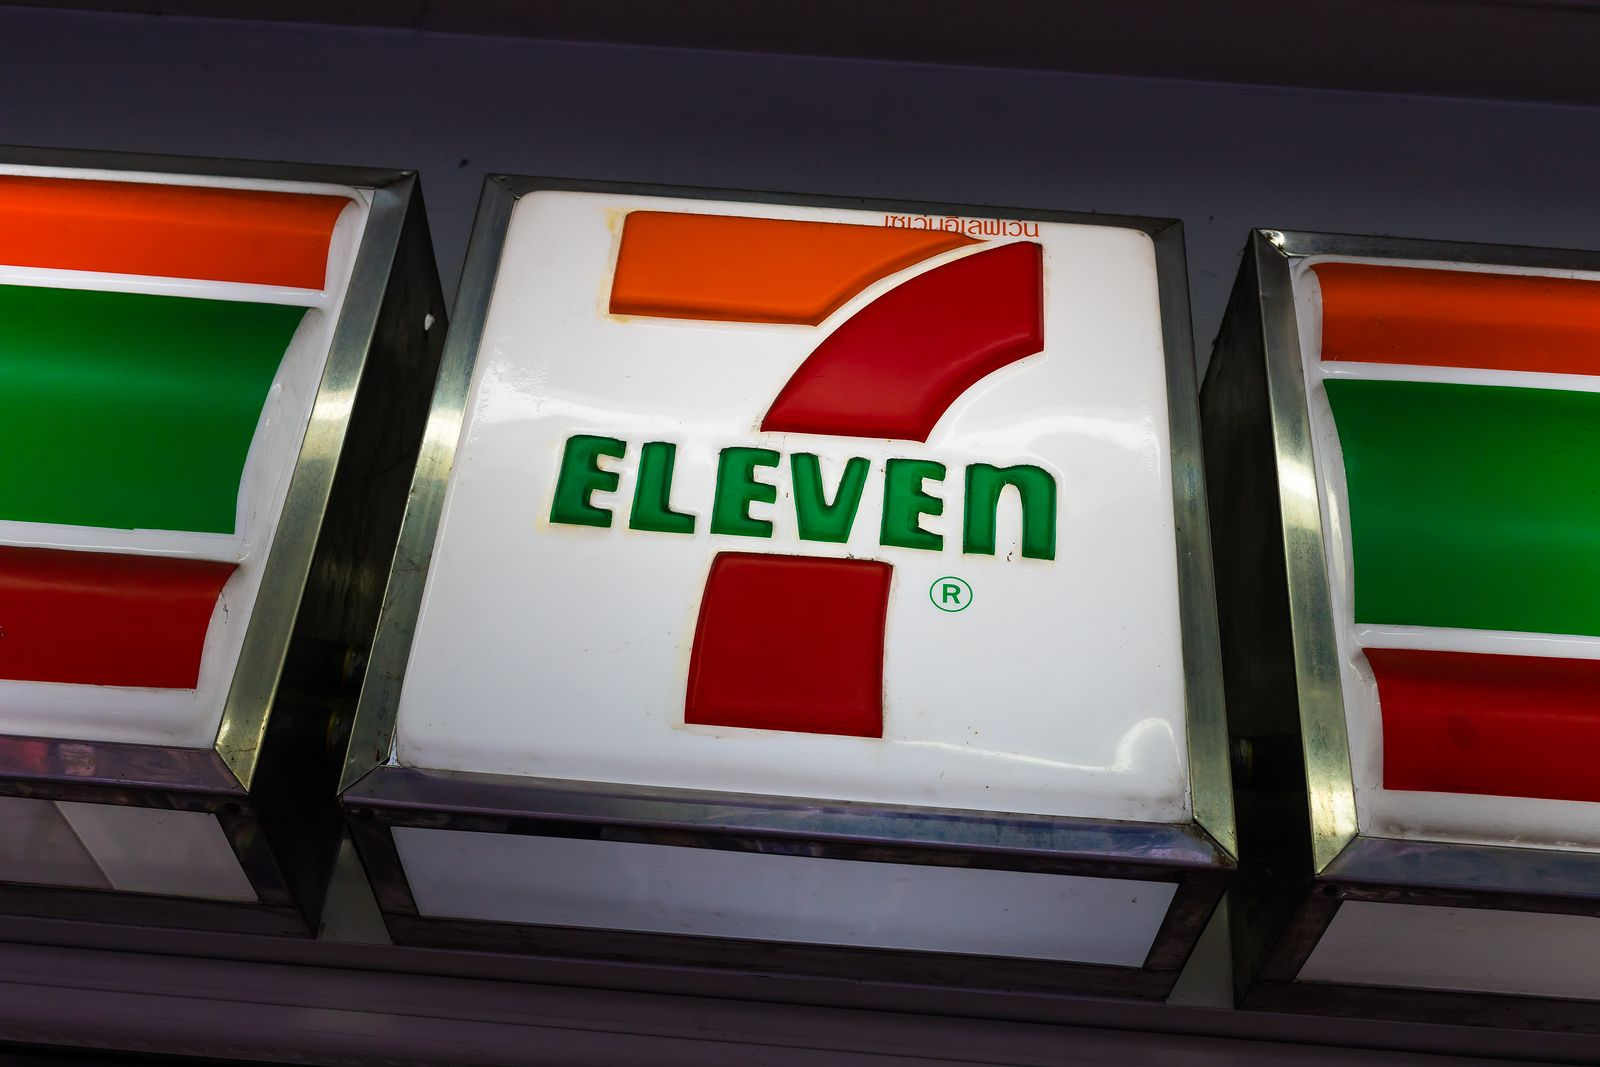 7-Eleven class action hits snag | Inside Franchise Business